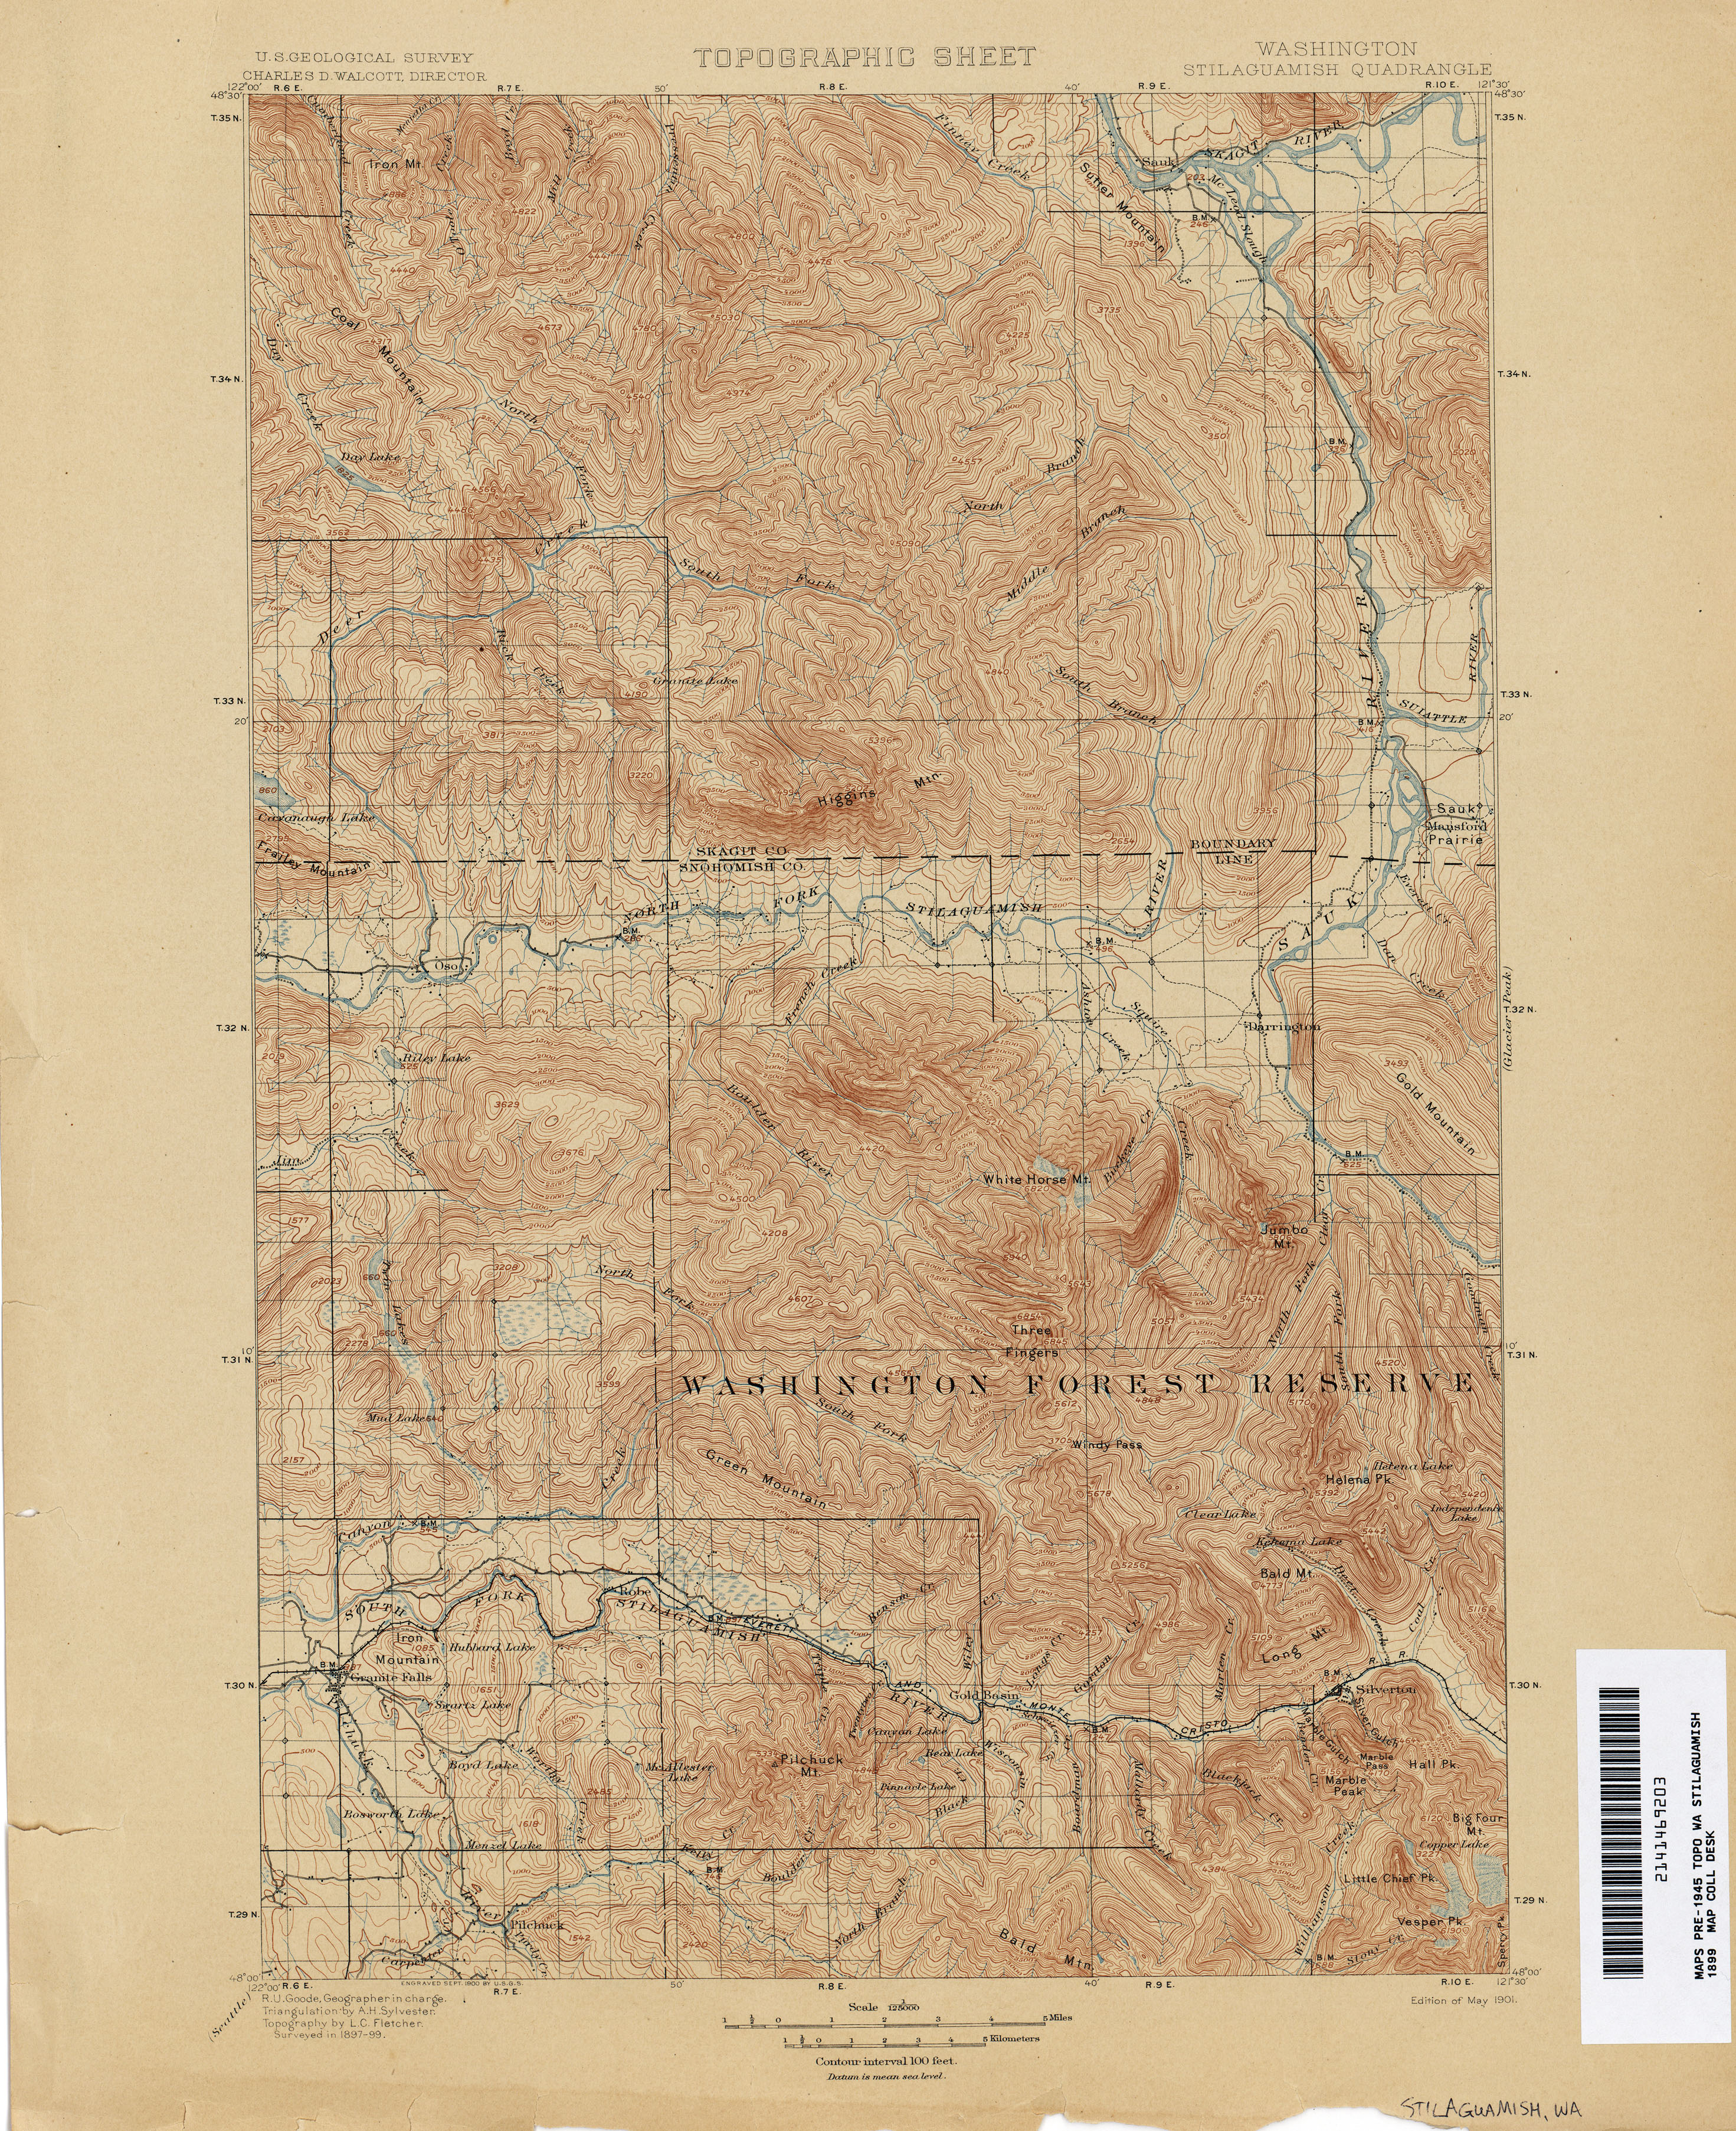 Washington Historical Topographic Maps - Perry-Castañeda Map